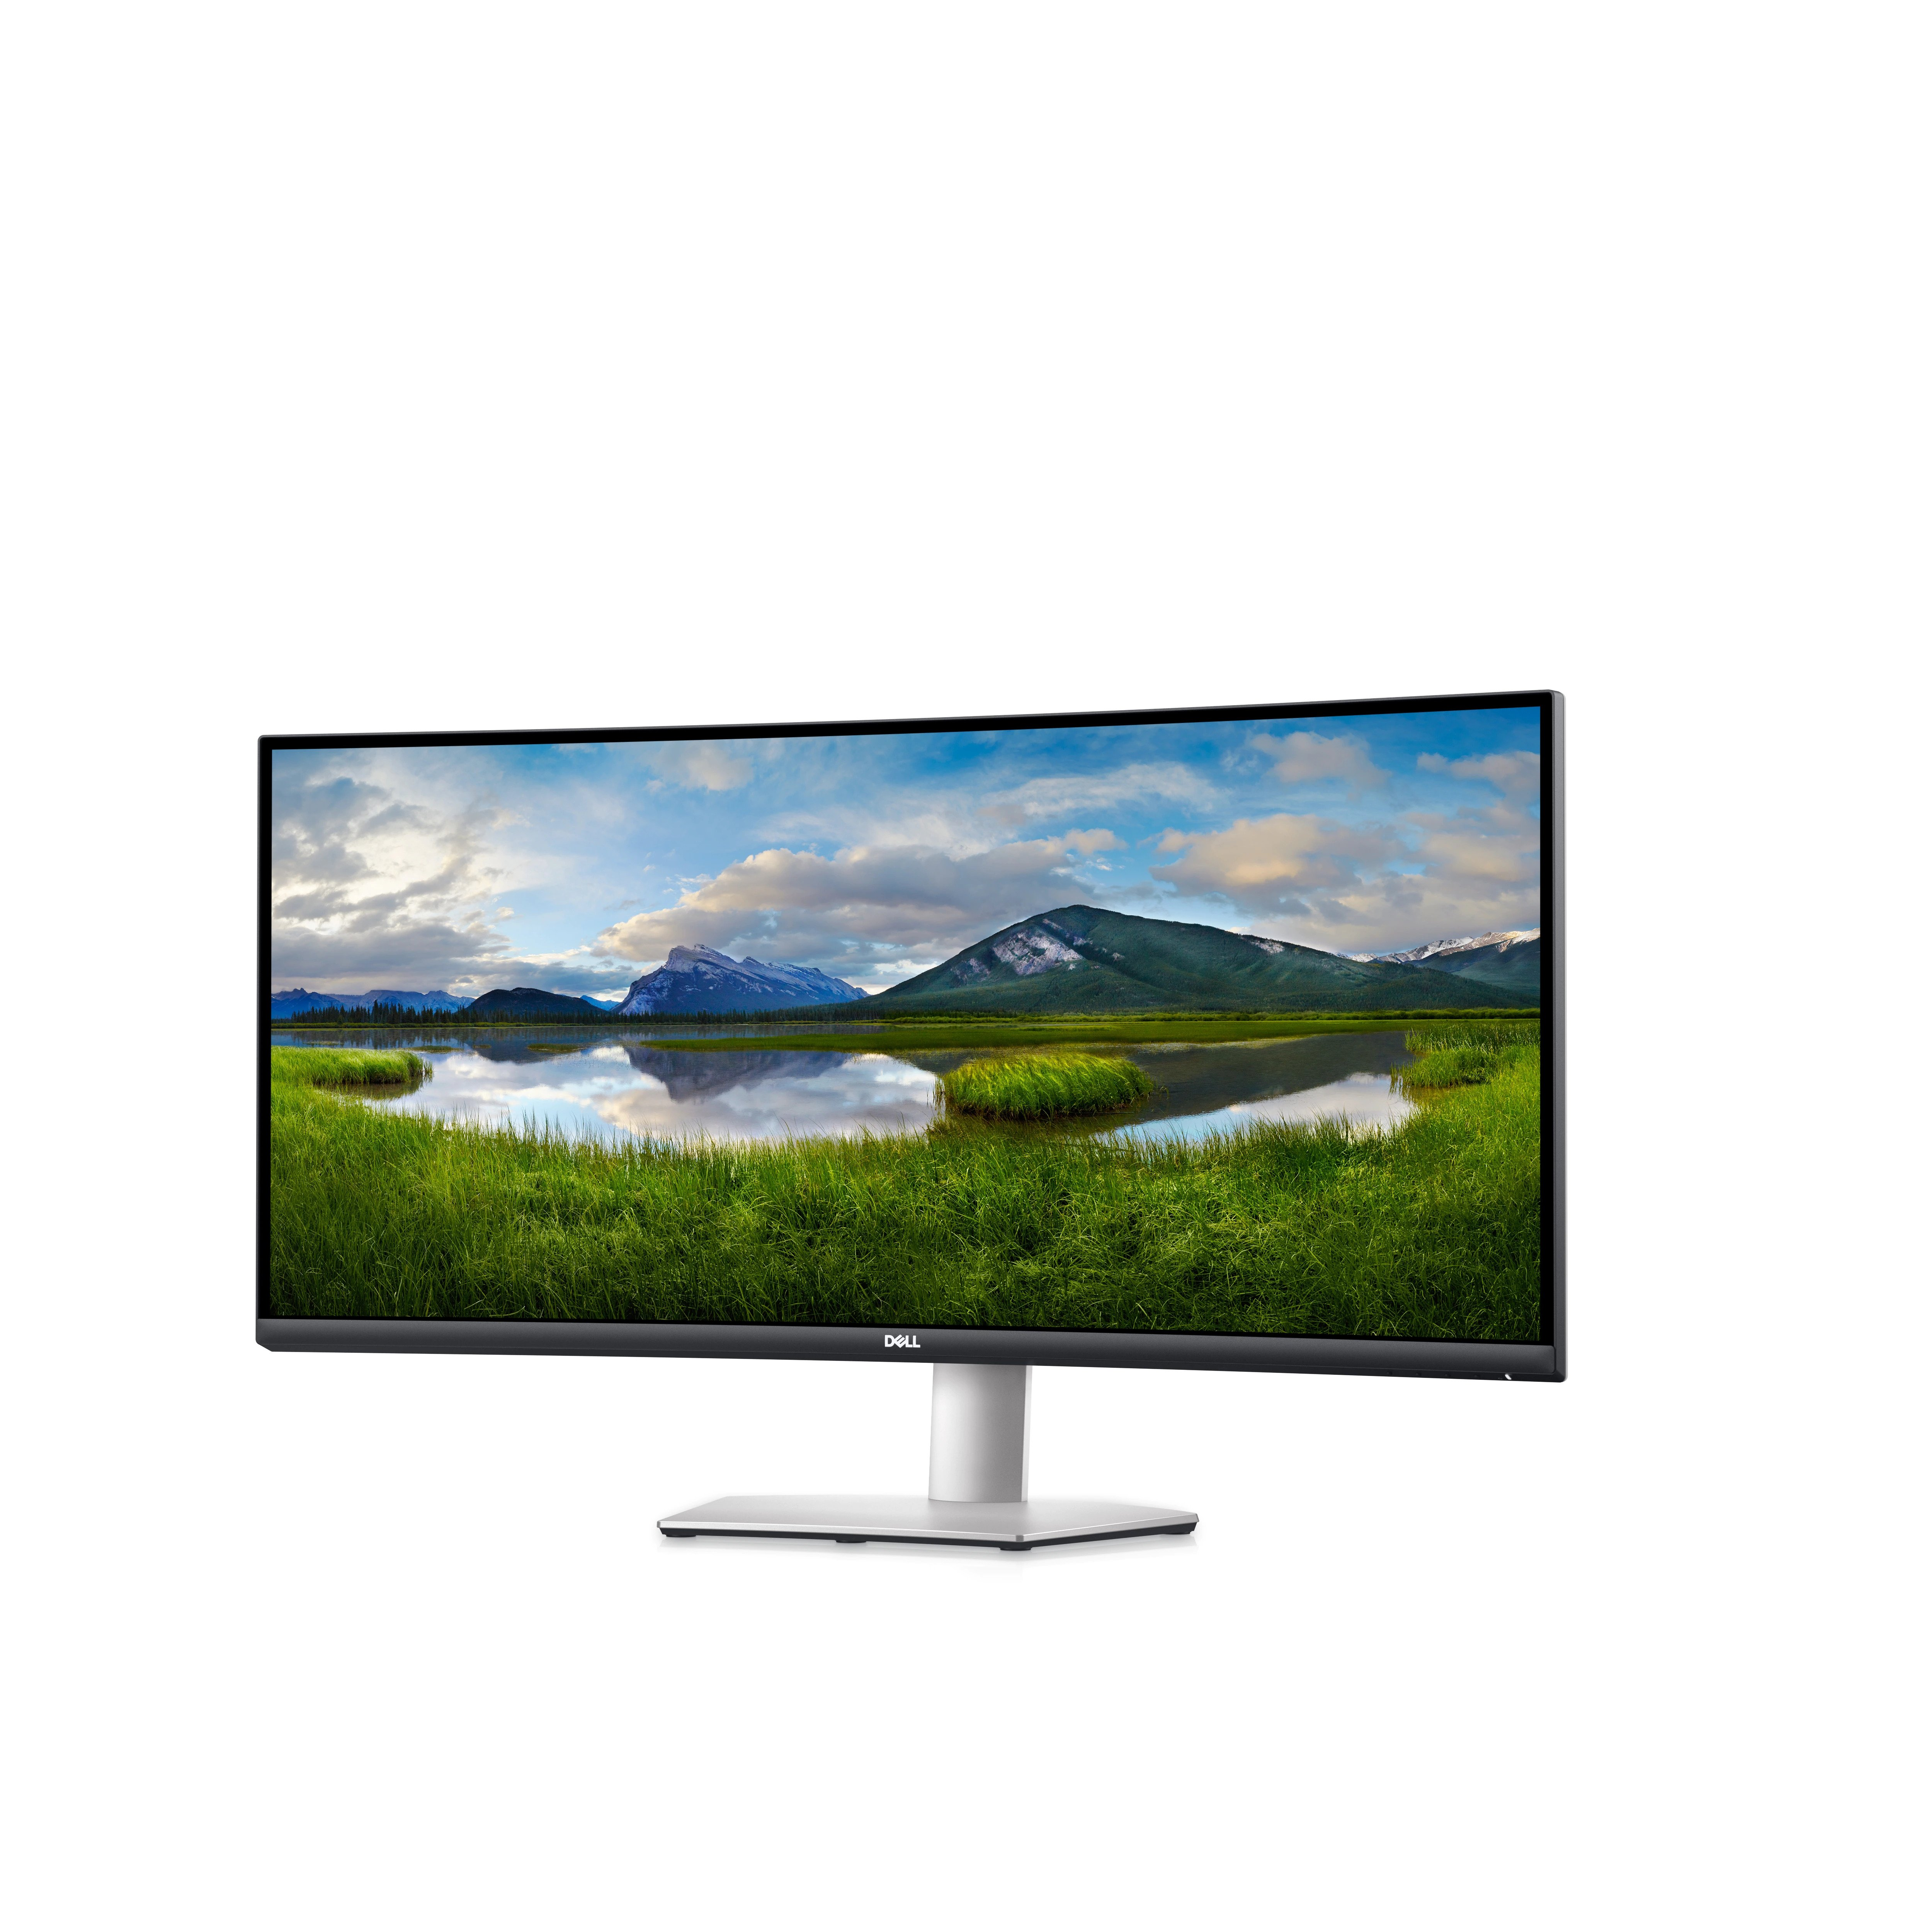 """DELL S3422DW 34"""" 4MS WQHD 3440x1440 100Hz HDMI/DP CURVED IPS LED MONITOR"""